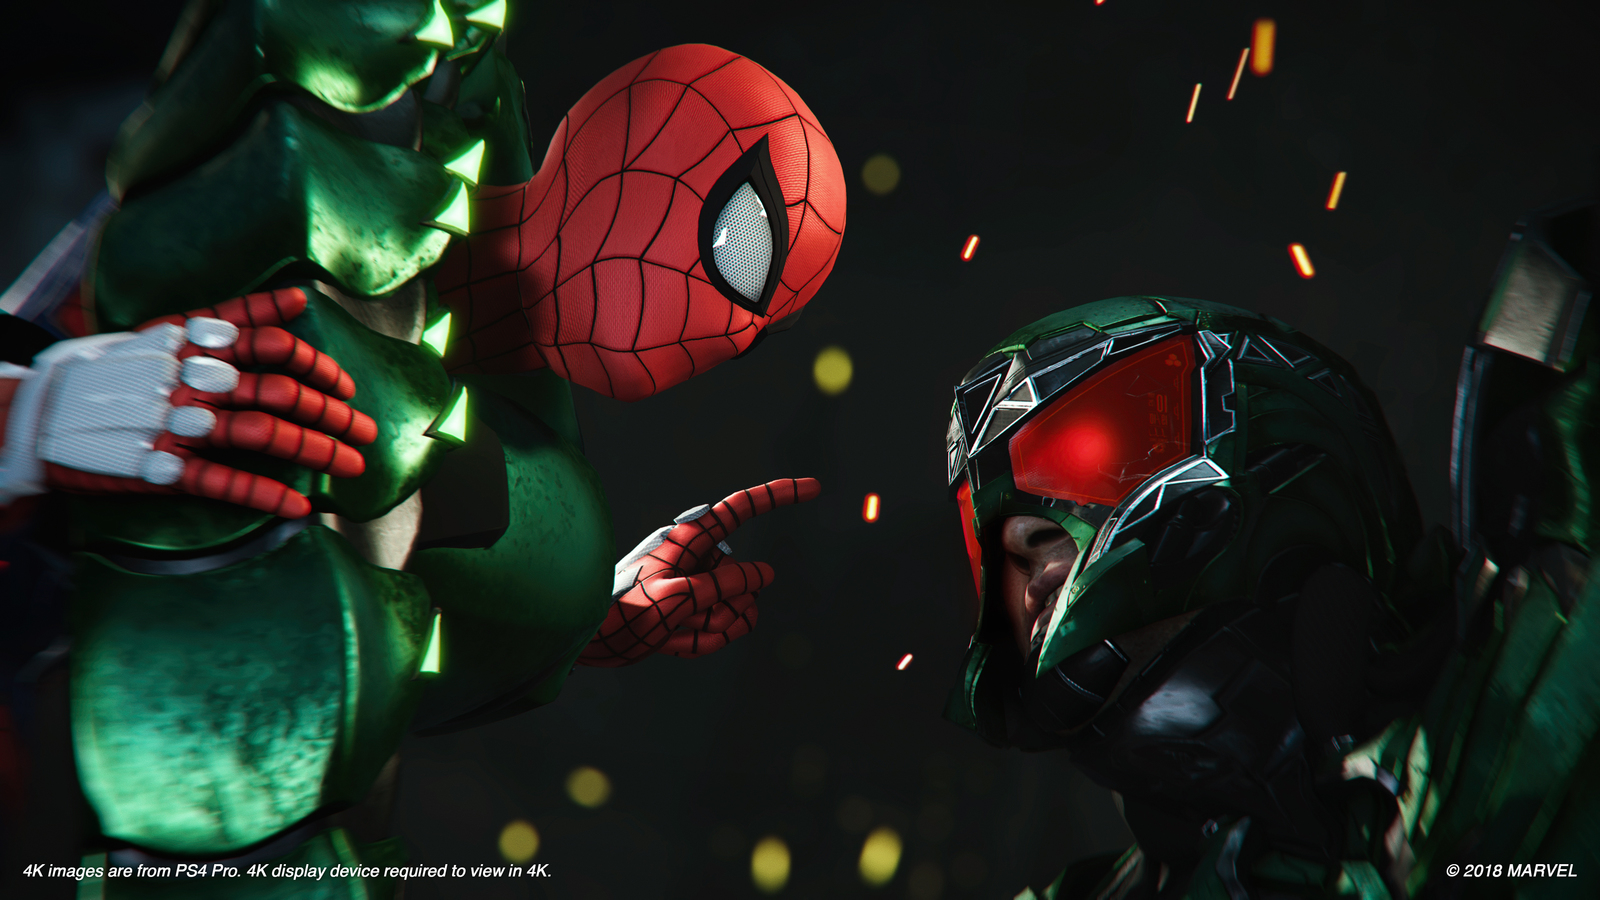 Spider-Man for PS4 image